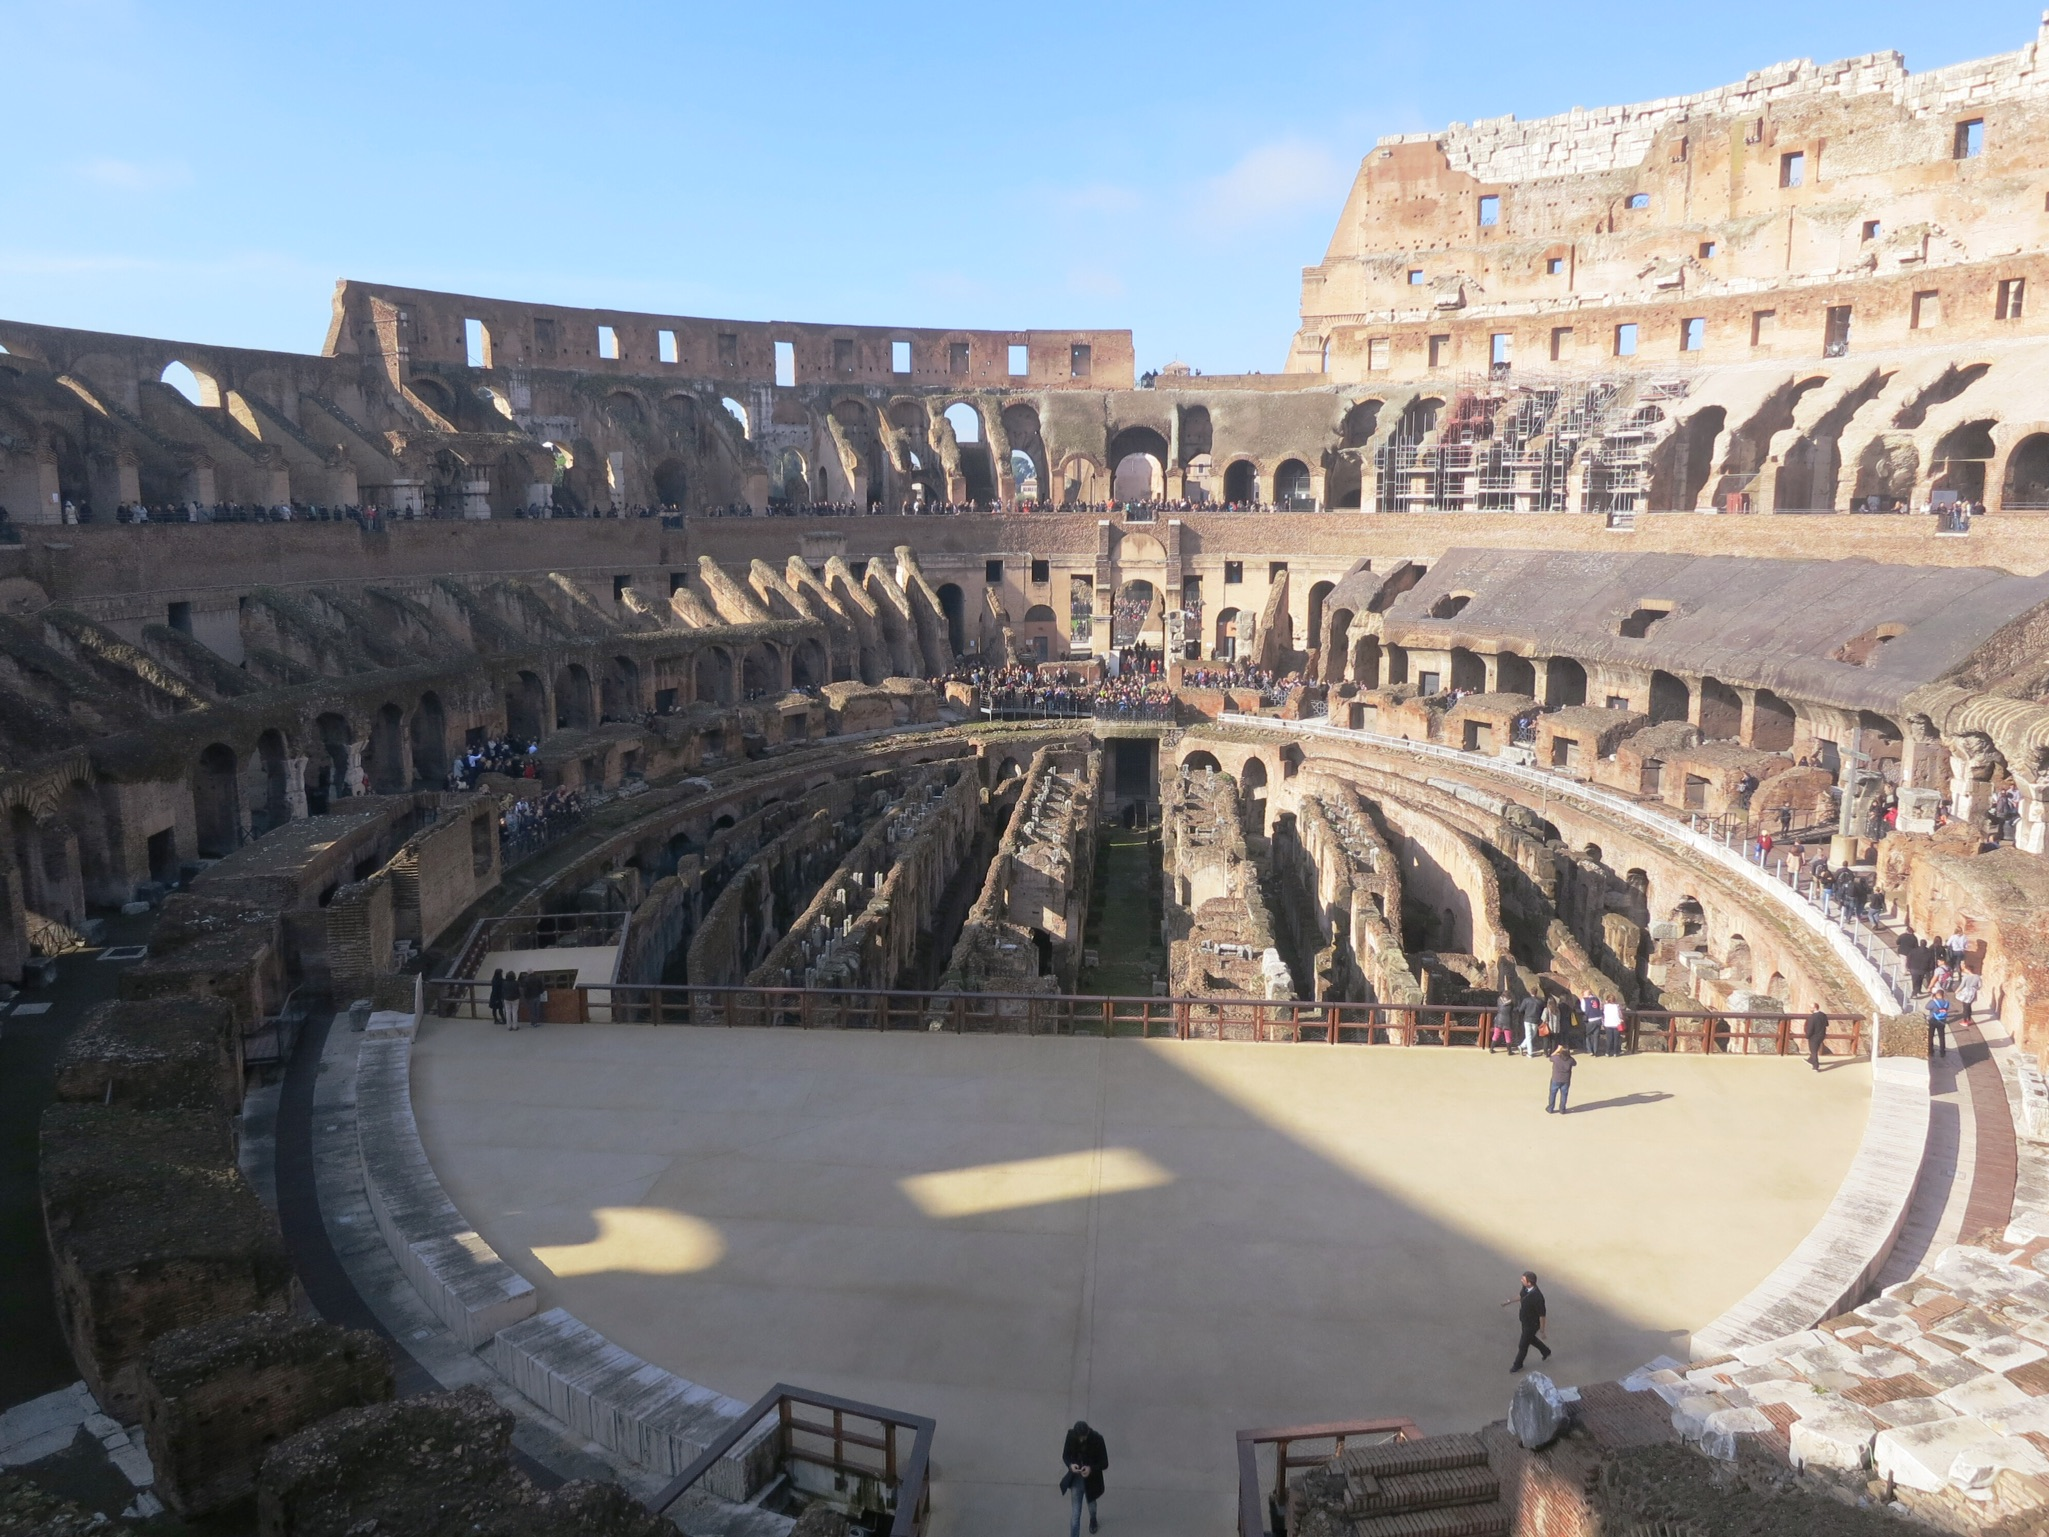 The interior of the Colosseum in Rom, Italy is a staggering sight.